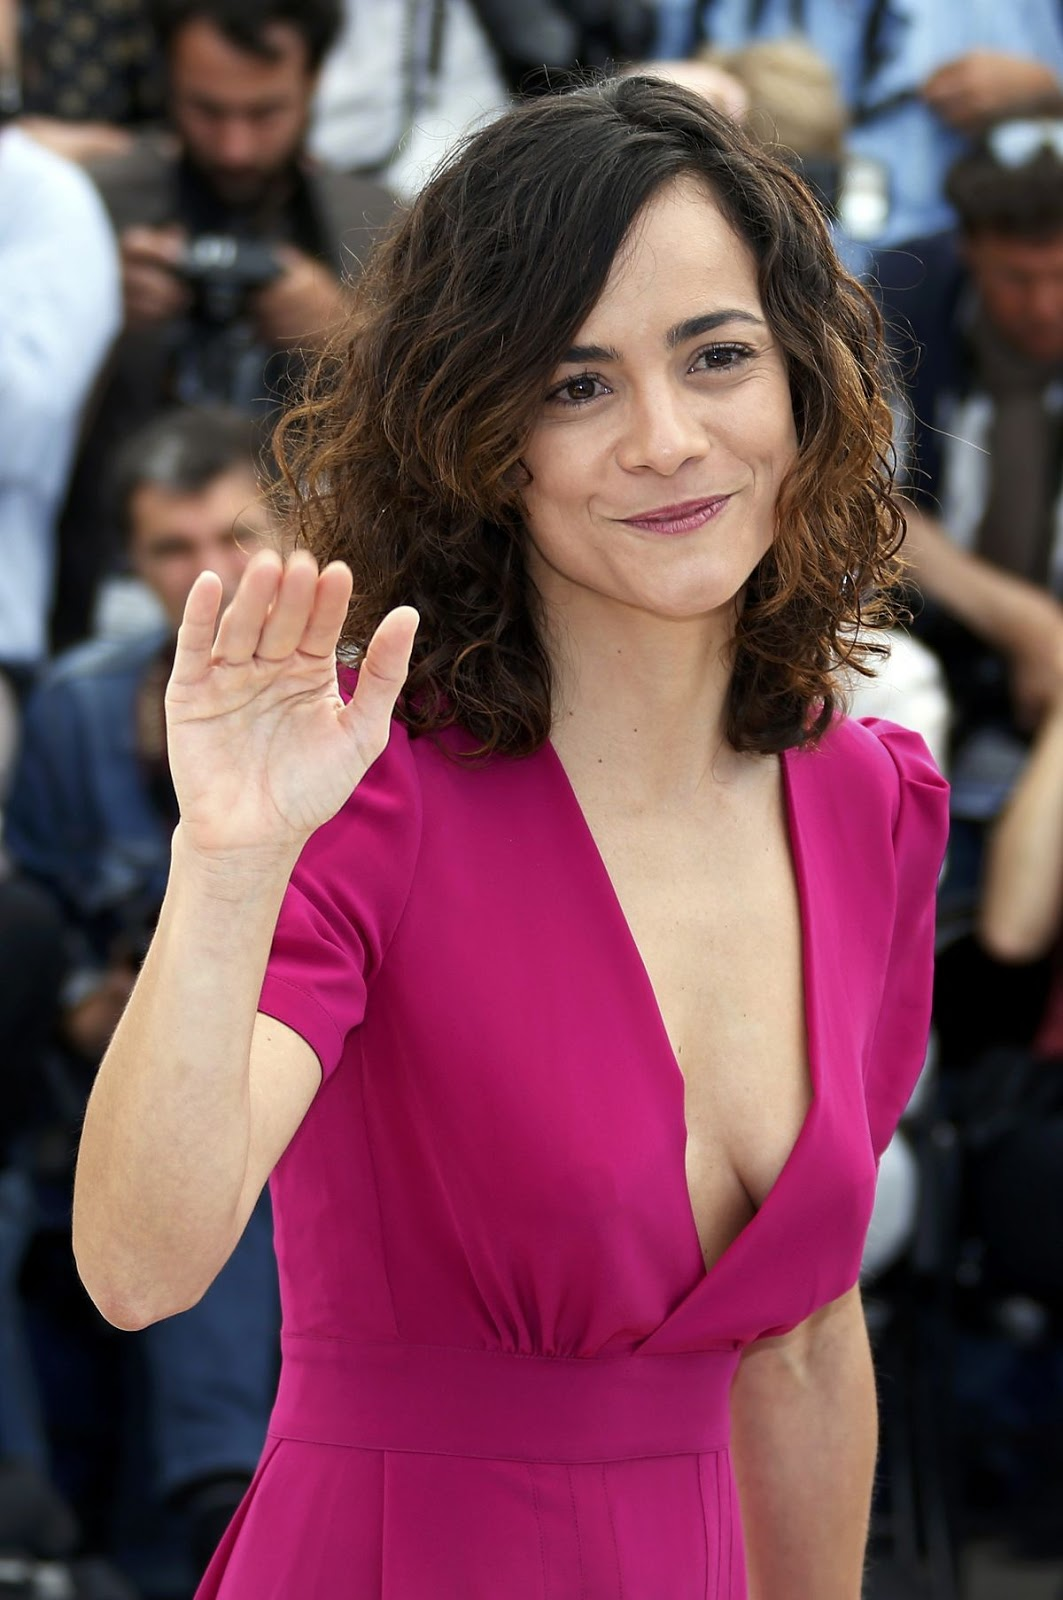 Alice Braga naked (47 photos), foto Pussy, Instagram, butt 2018